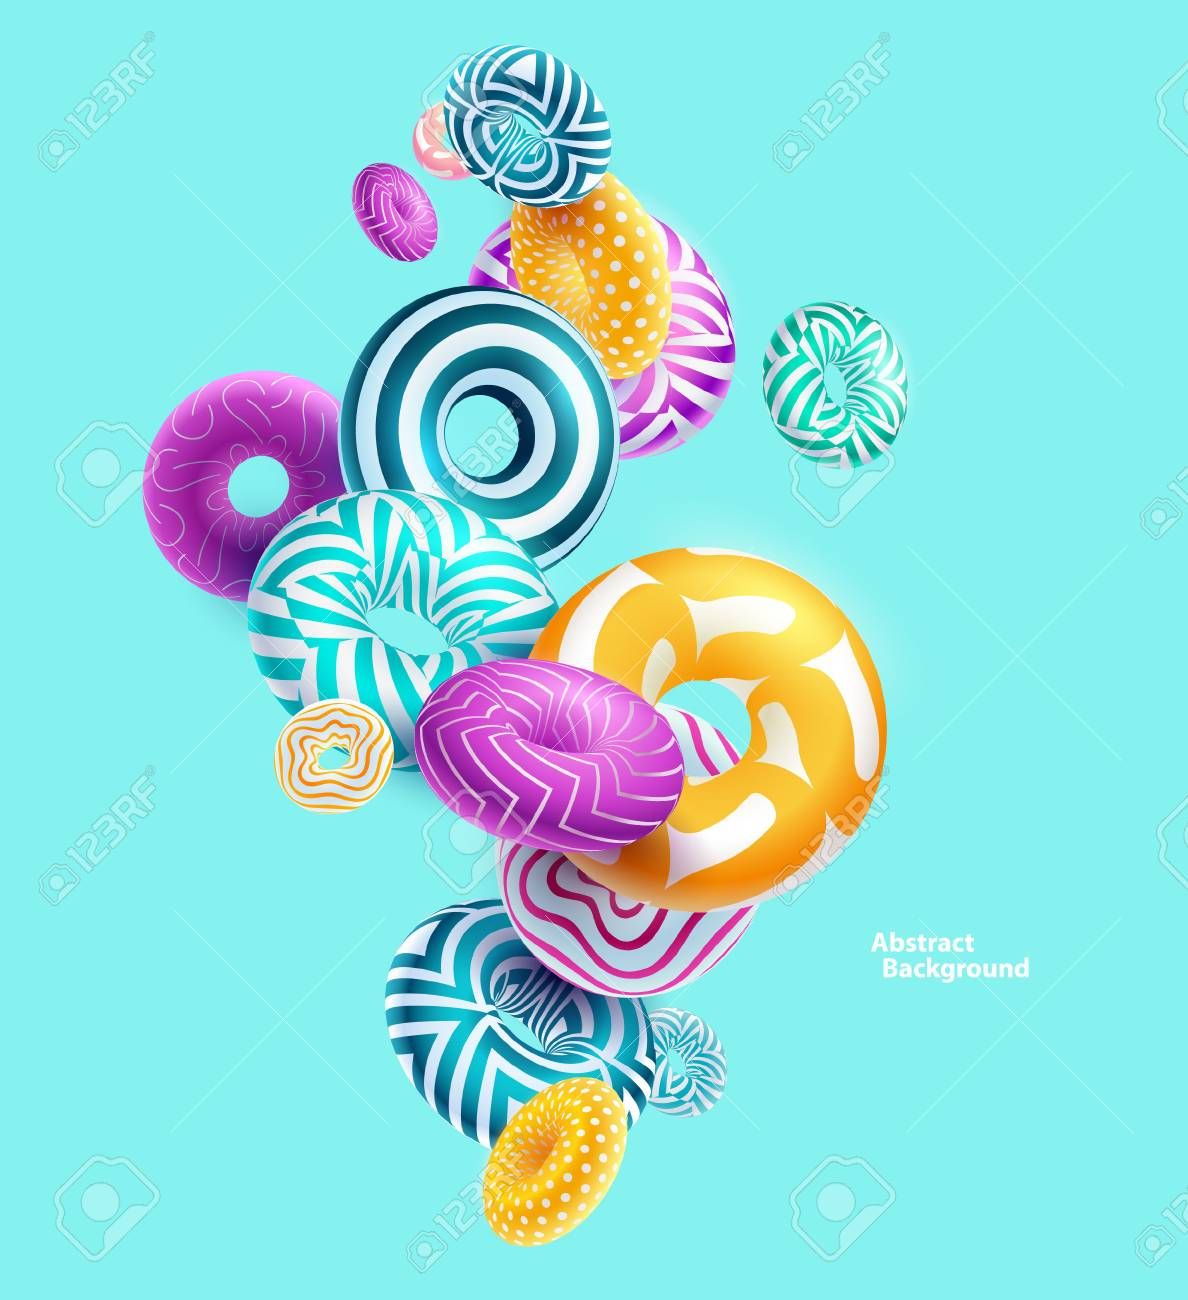 Multicolored decorative rings. Abstract vector illustration. - 75253843